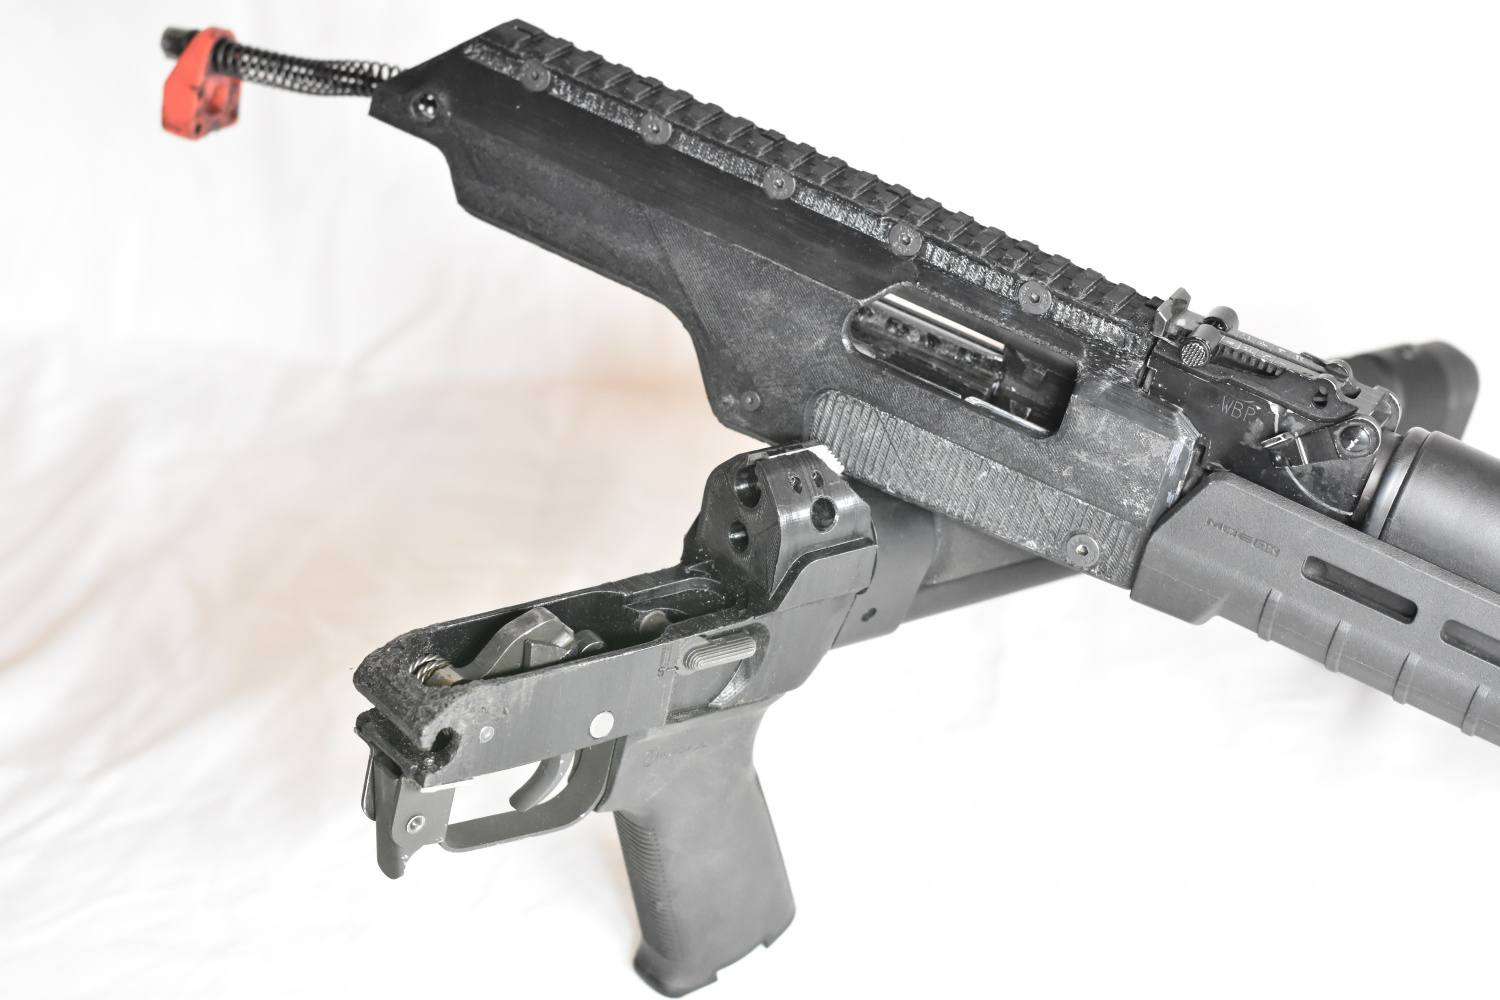 DNO Firearms DX-7 Rifle With Prototype 3D Printed Polymer Receivers (14)